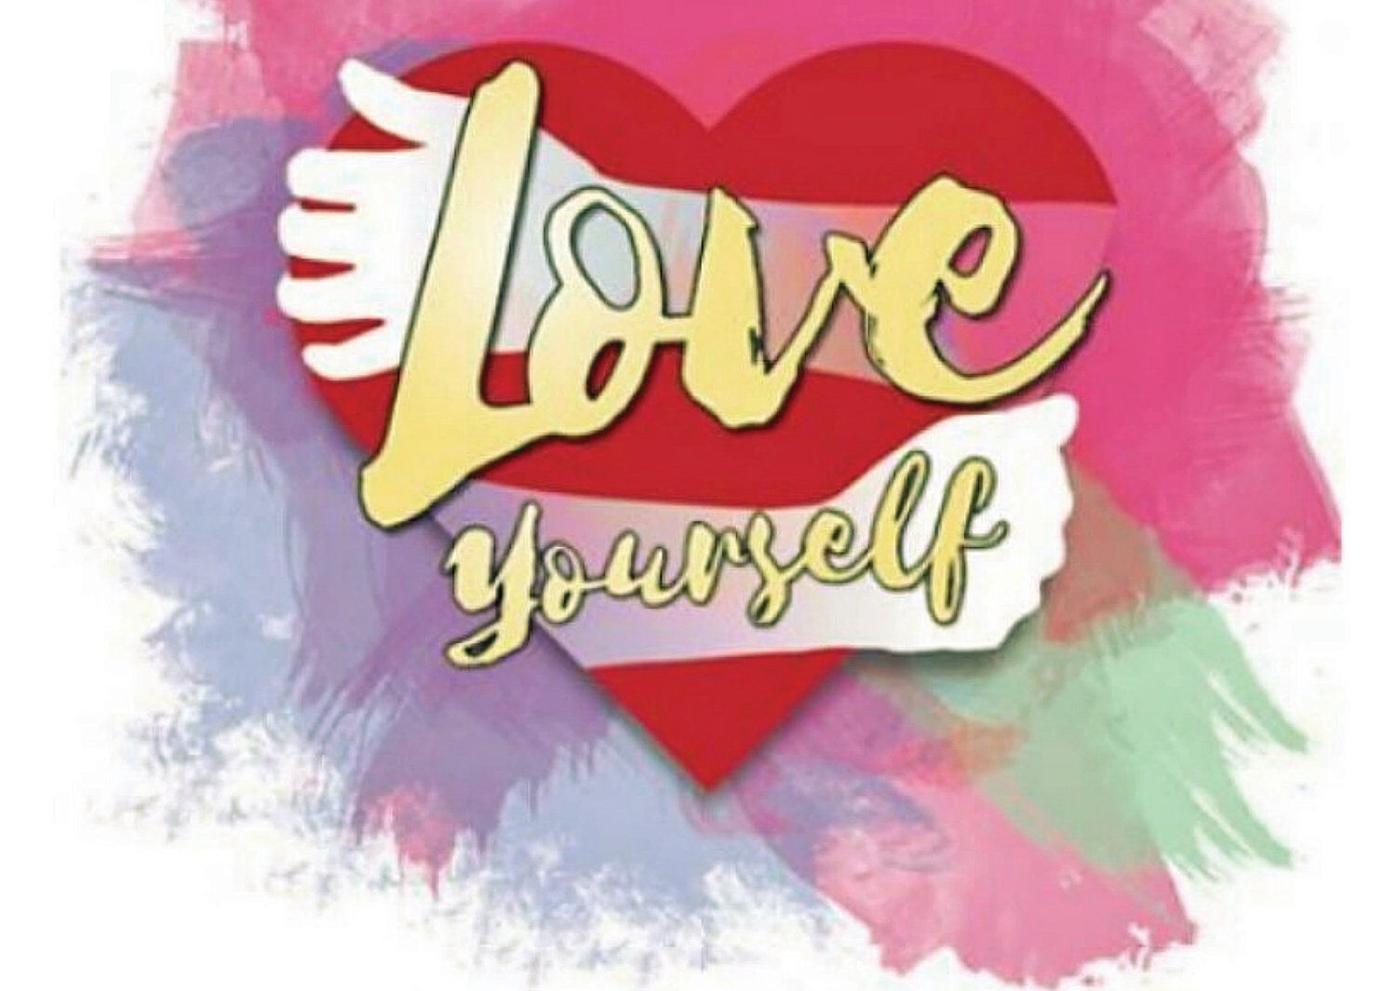 'Love Yourself' event to raise awareness about suicide prevention